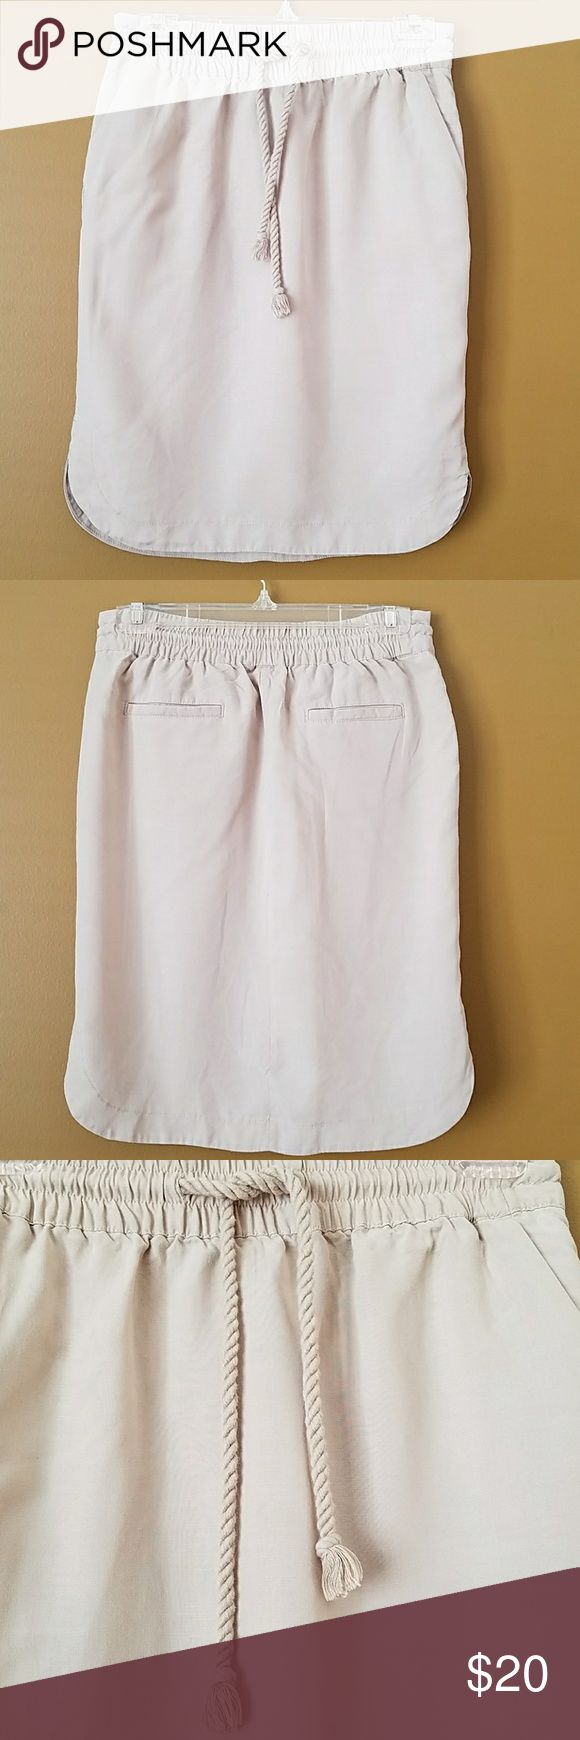 [LOFT] Khaki Tulip Skirt Cute khaki skirt with pockets. Rounded hem for a very pretty feminine fit. Drawstring and elastic waist. Lightweight. Waist: 14.25, Length: 22 inches. 100% Tencel Lyocell. Excellent condition. Add to bundle to save! (AA4) LOFT Skirts